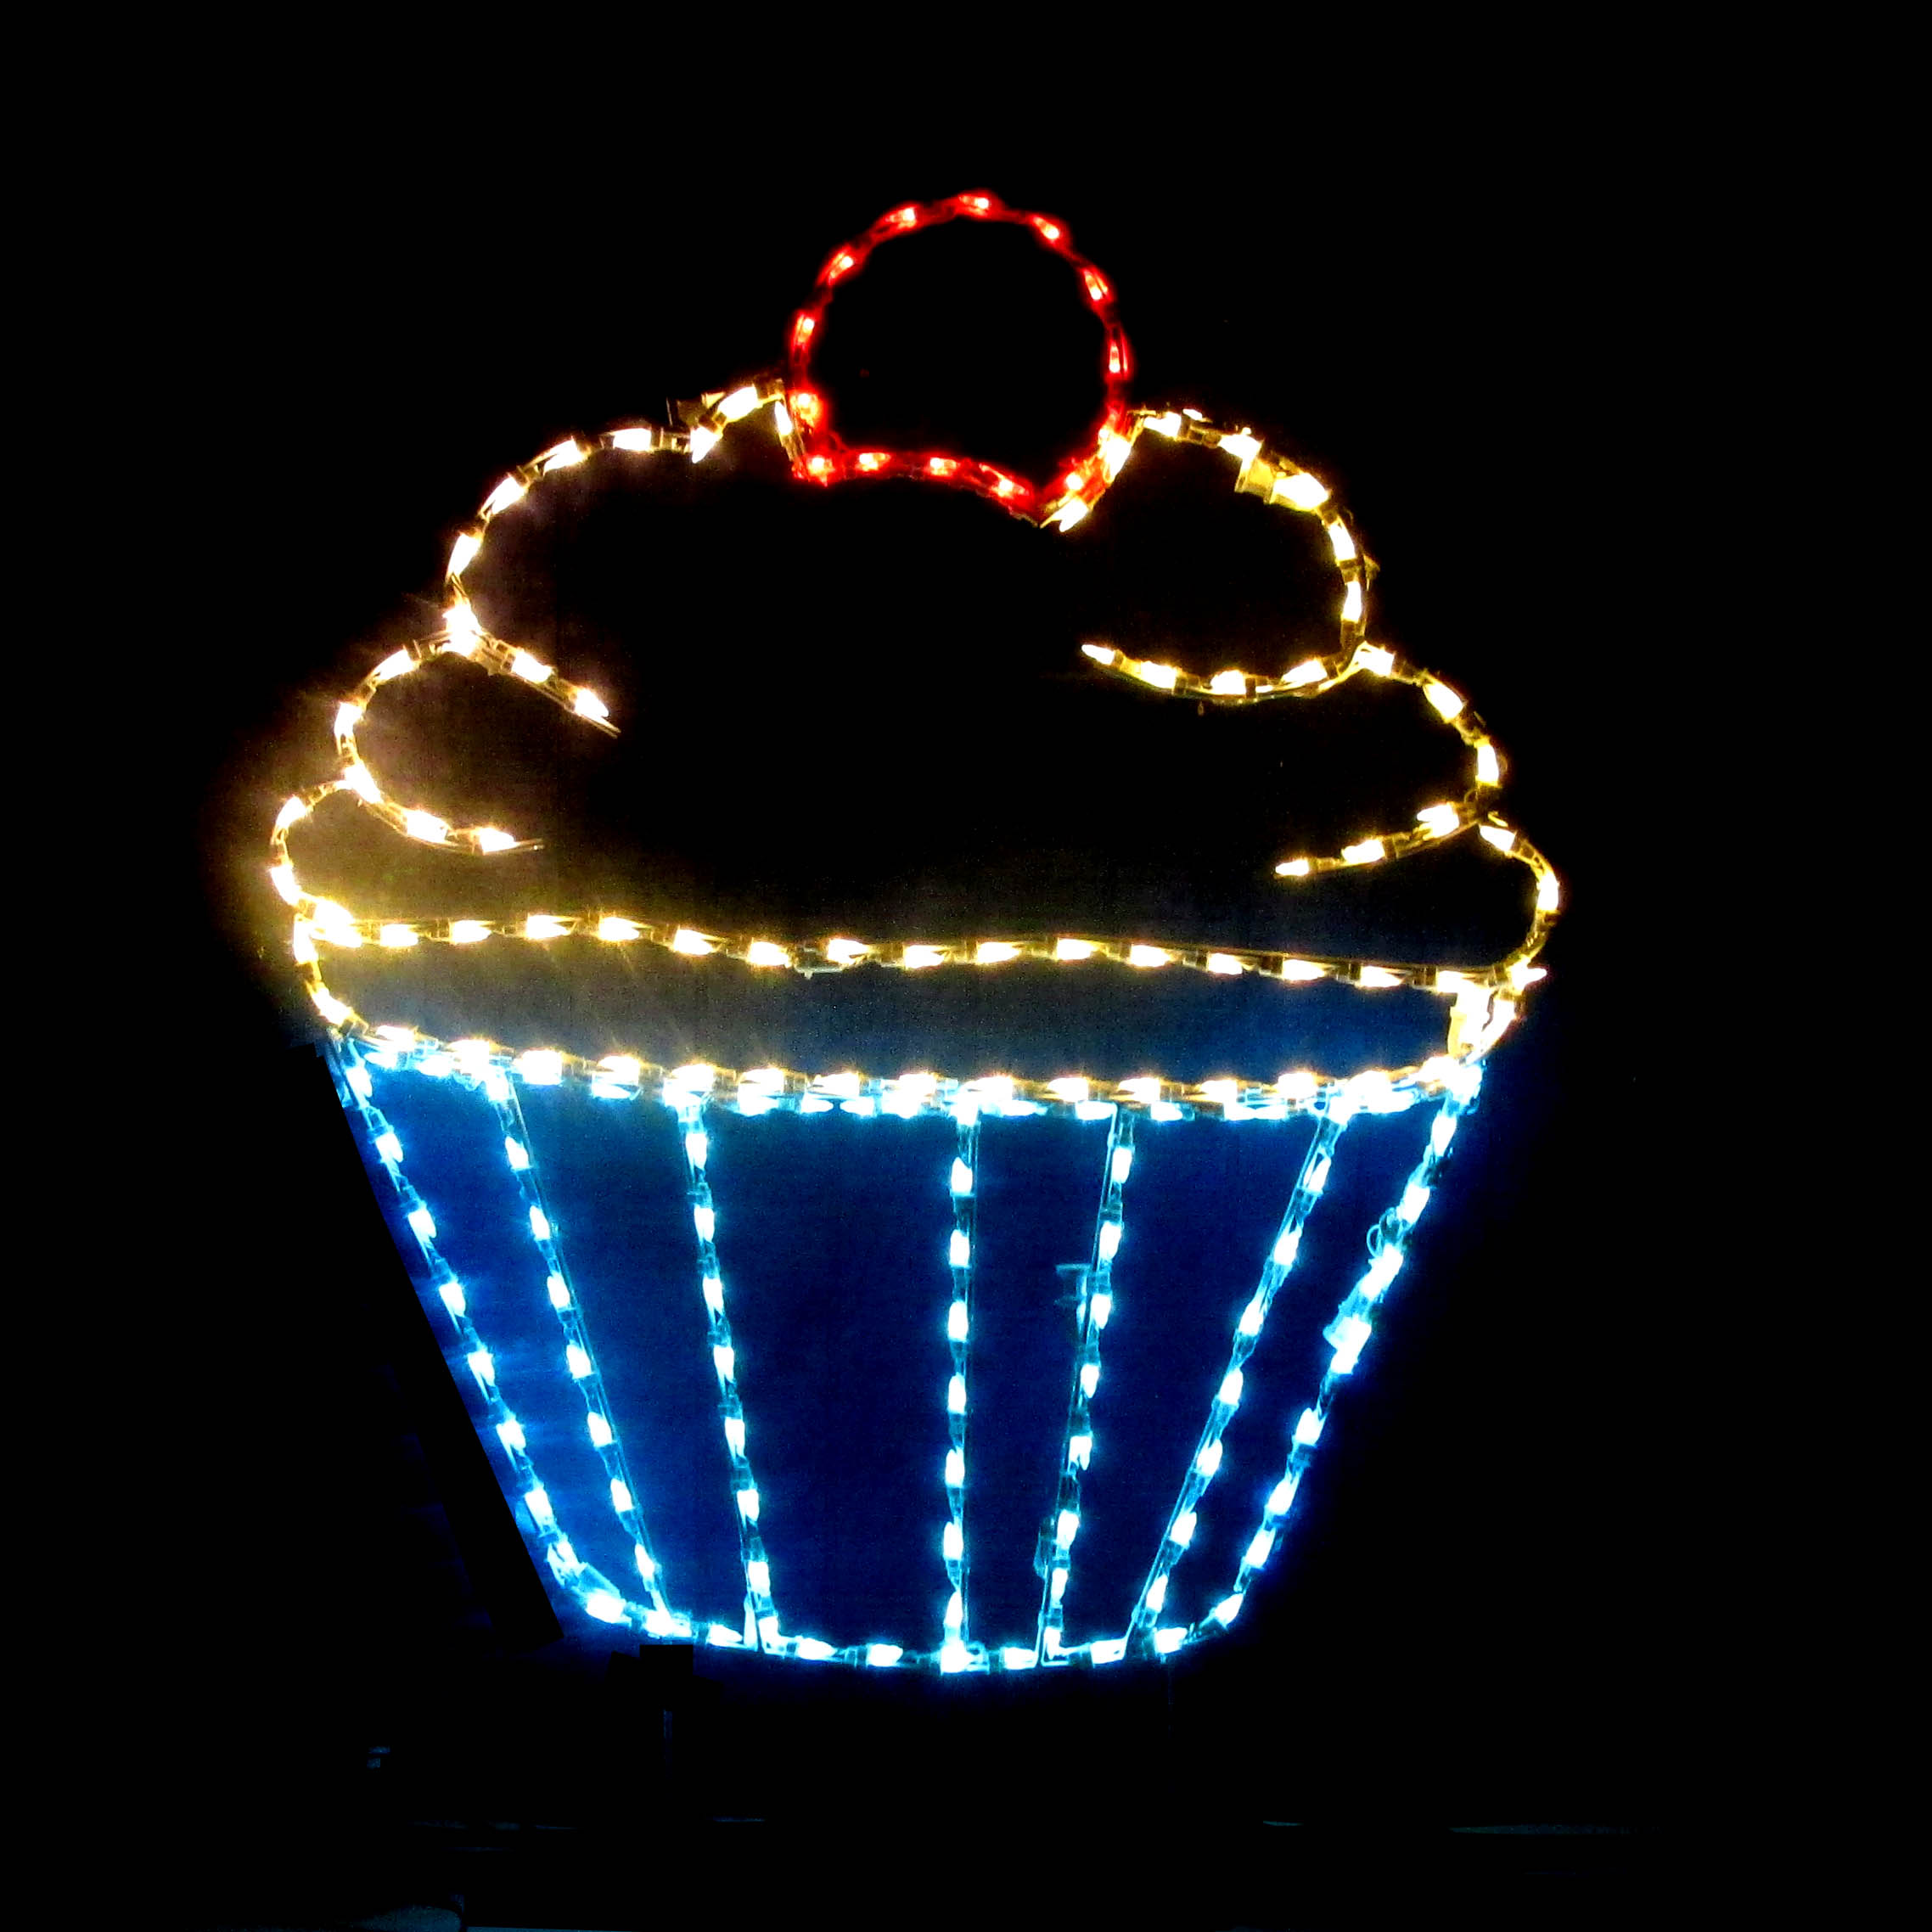 CupCake decorations for Yards and Bakerys